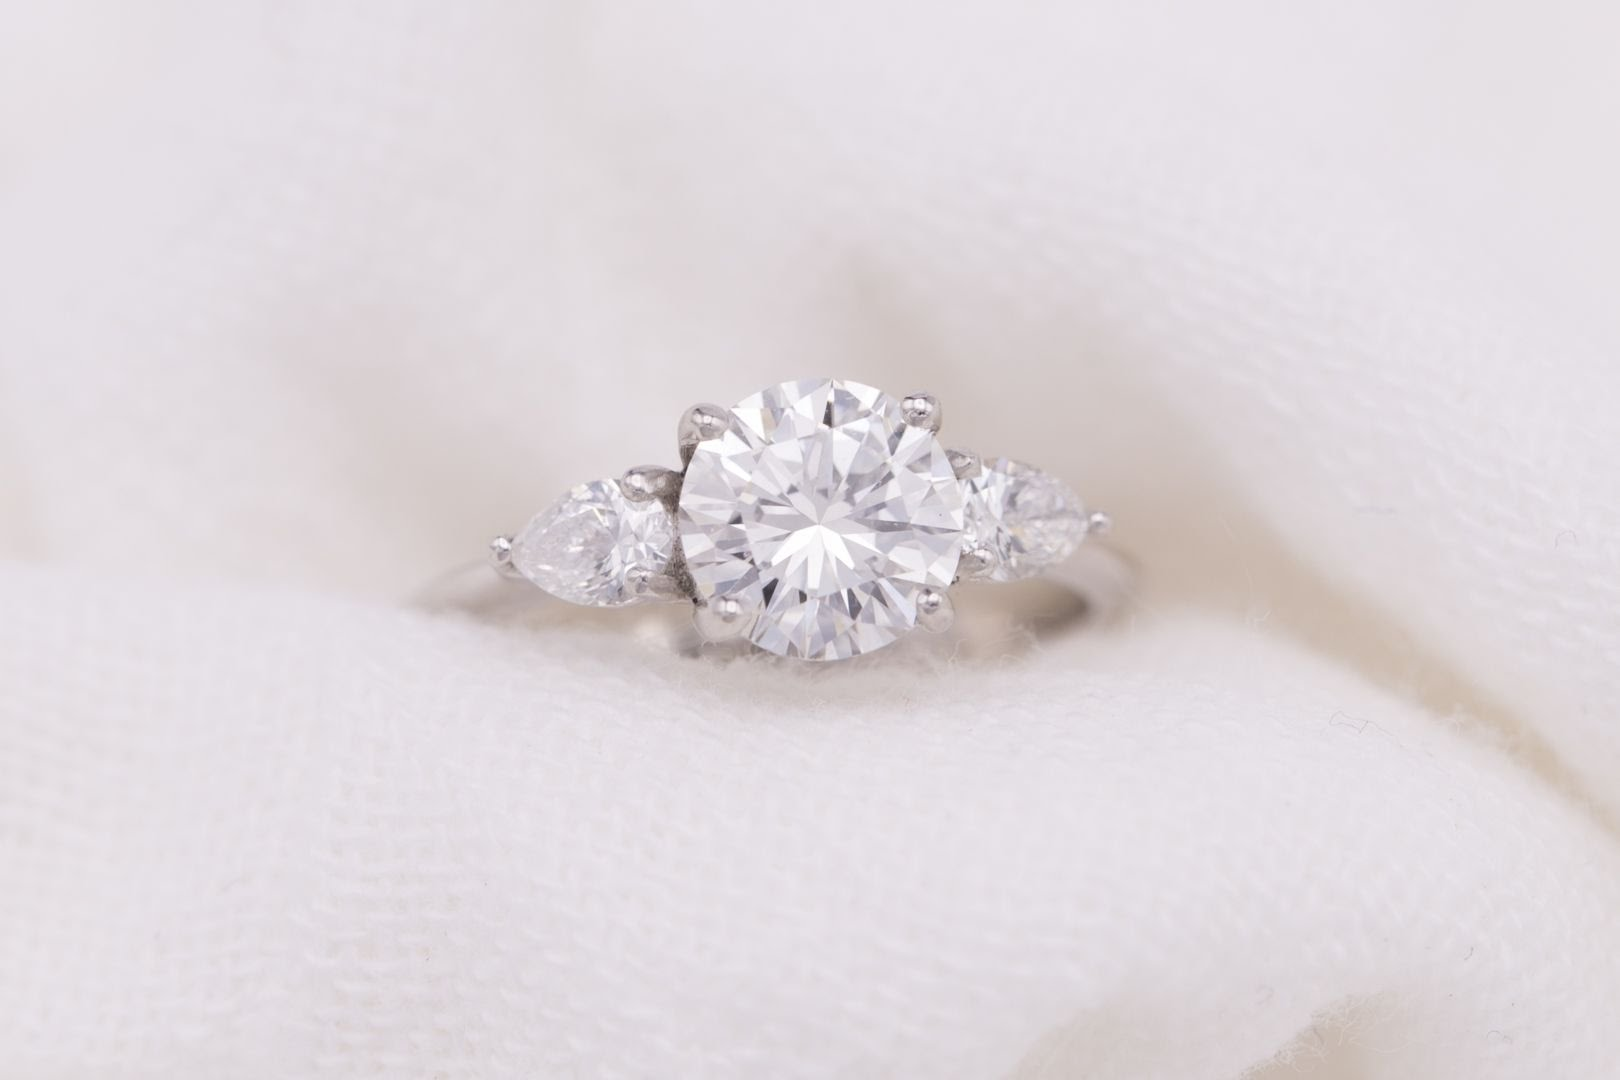 buying a one carat diamond ring - three-stone ring with pear side stones